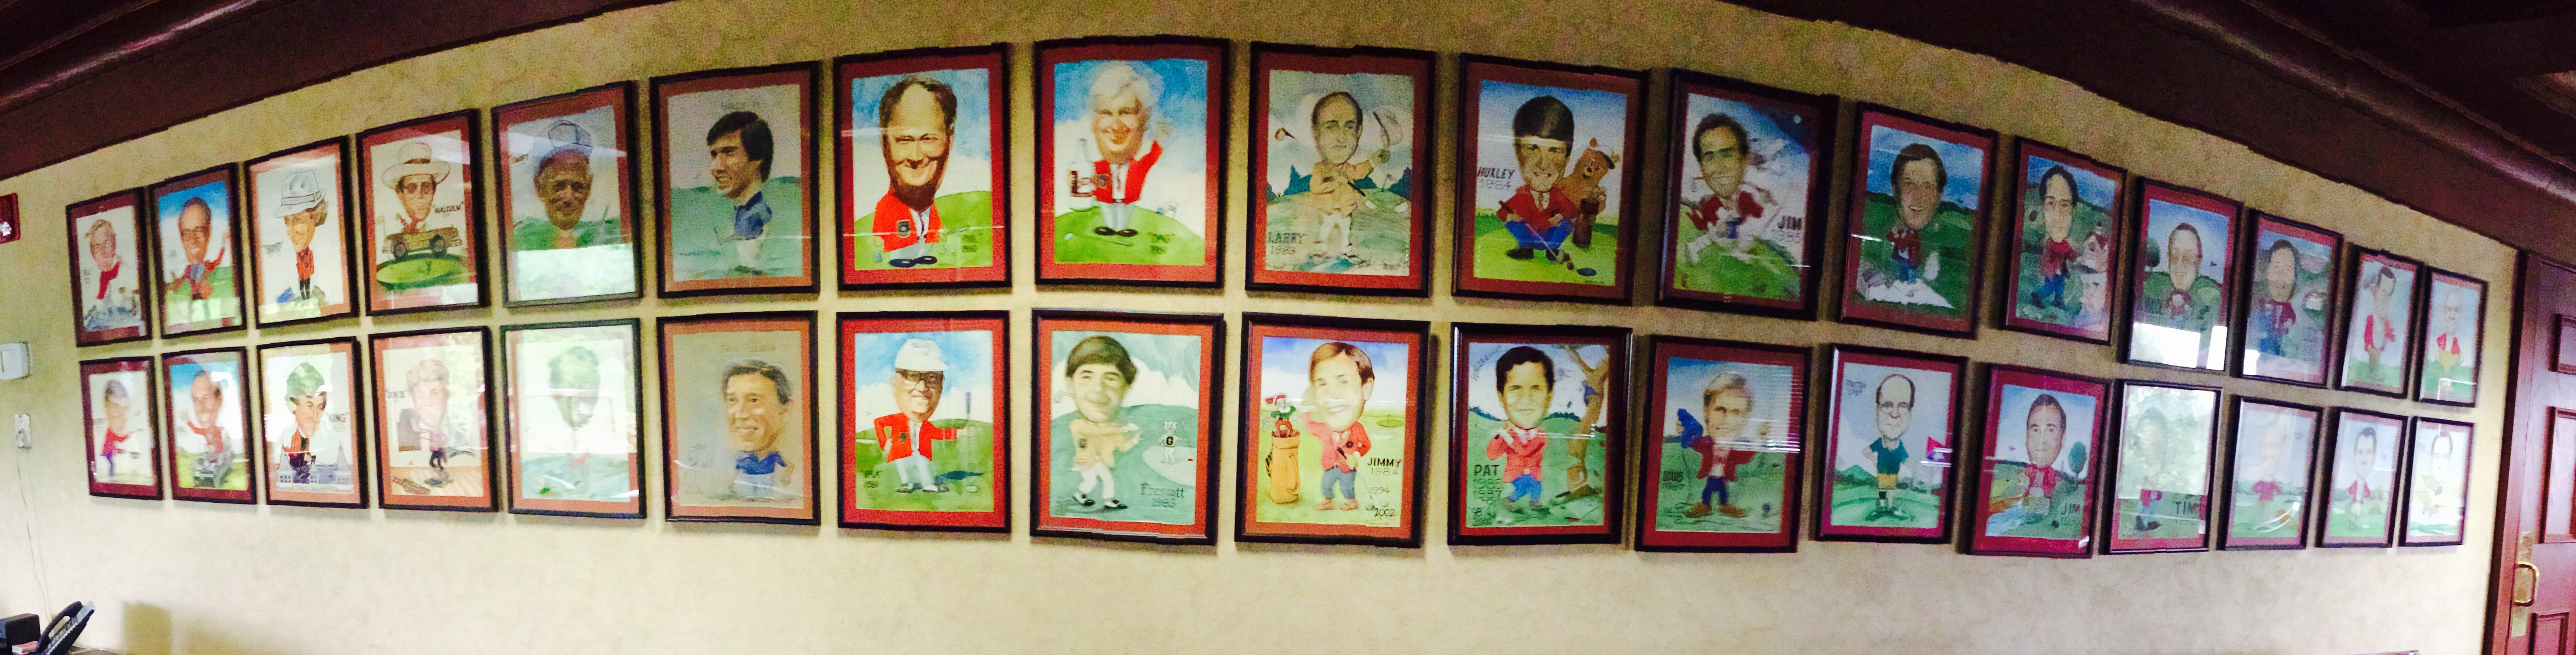 Caricatures of Past Champions